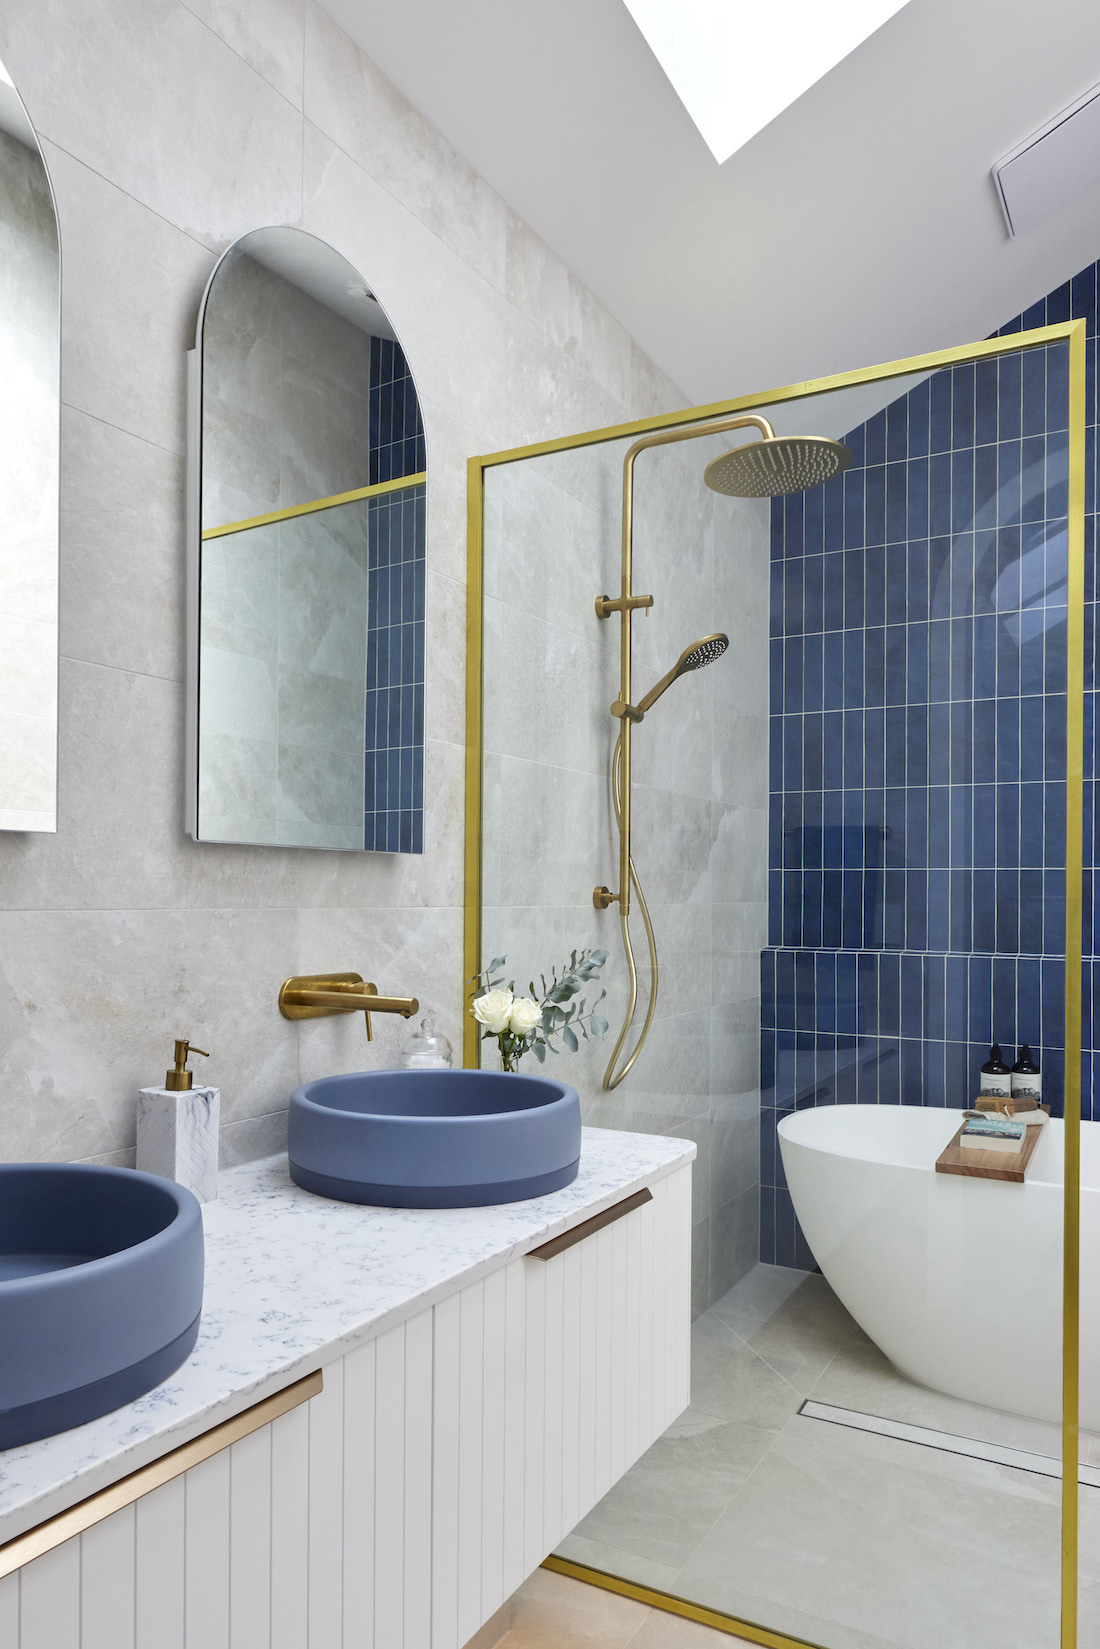 Indigo blue tiled feature wall with gold accents in bathroom